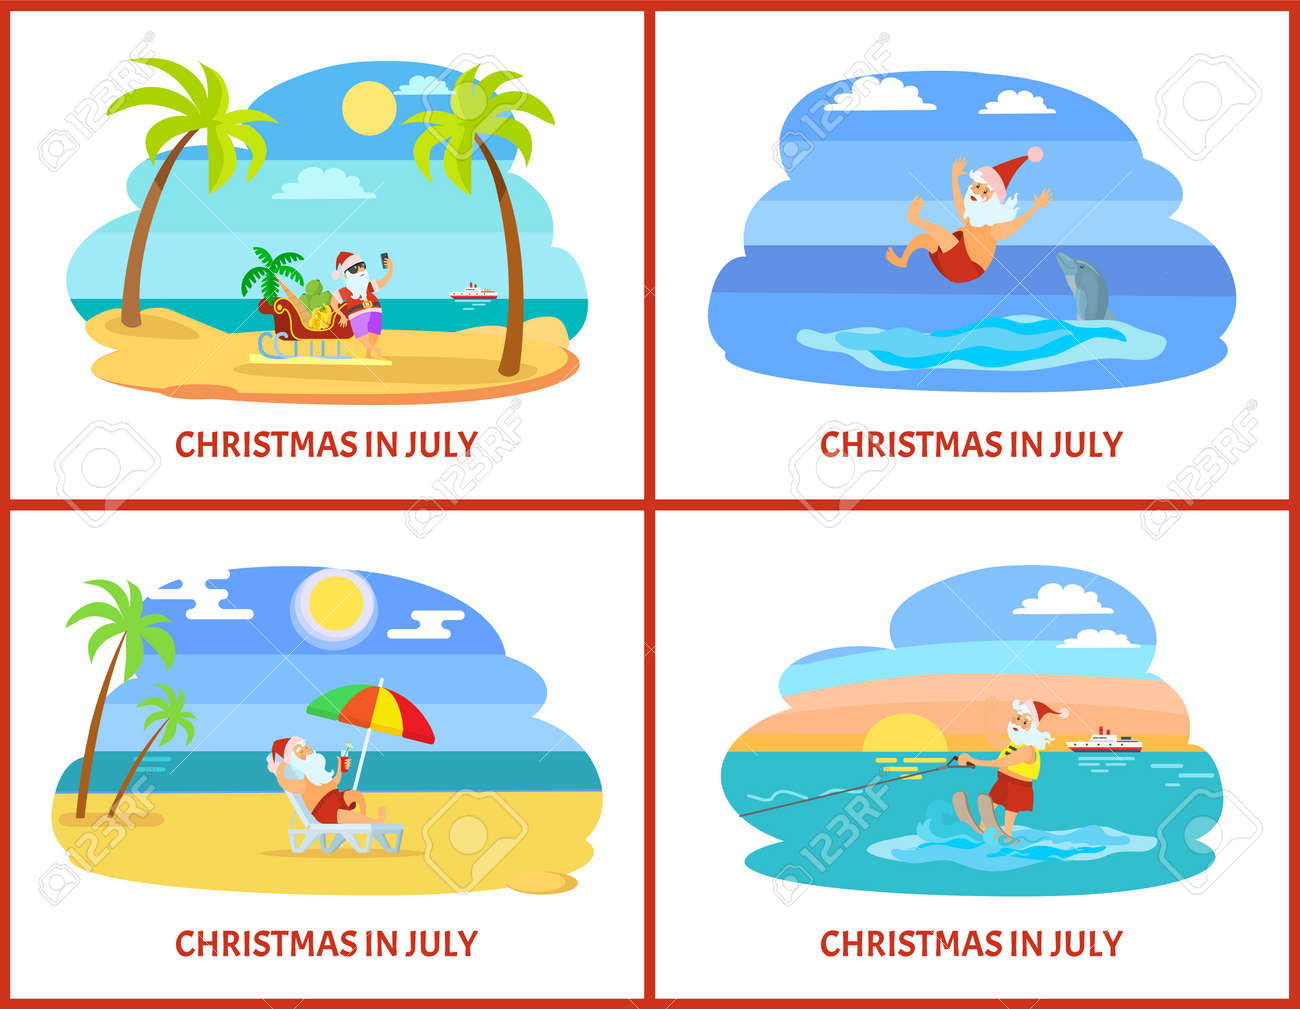 Christmas In July Santa Clipart.Christmas In July Celebration Of Holiday In Summer Vector Santa